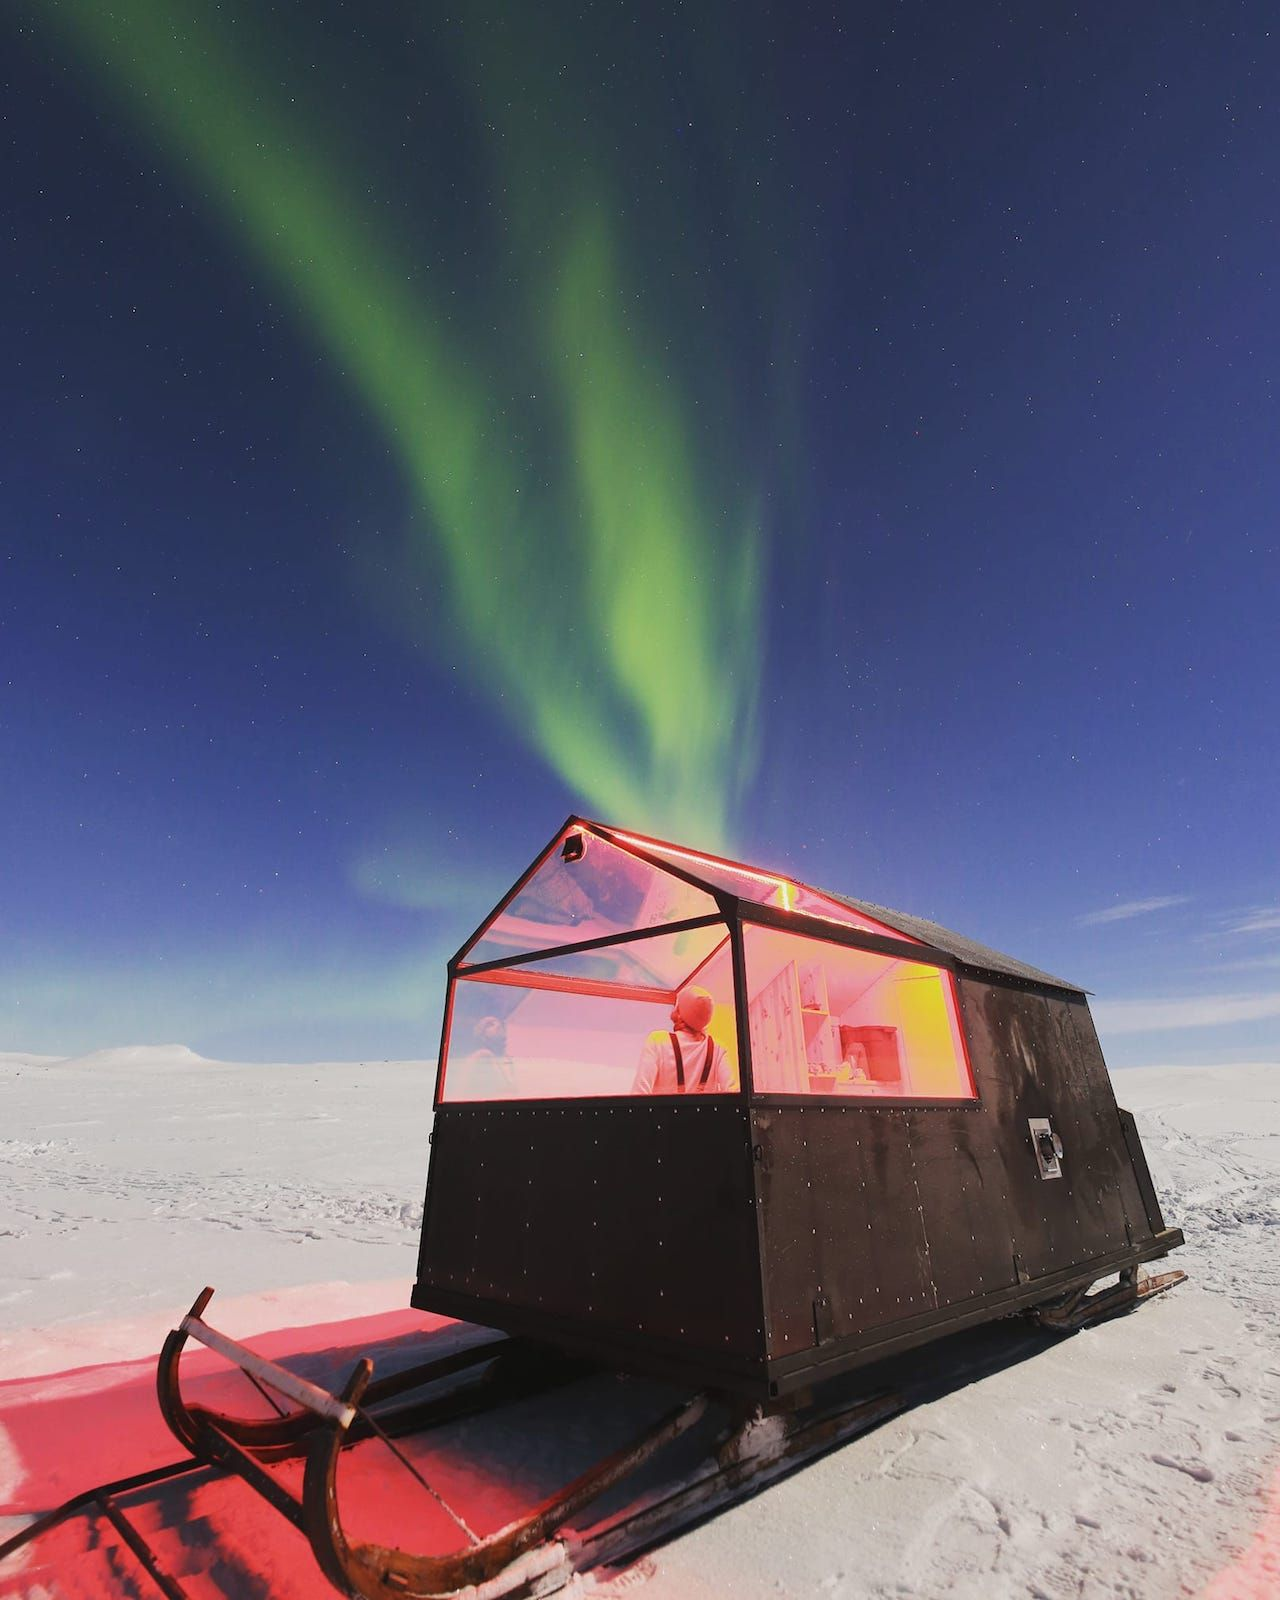 Northern lights above sled